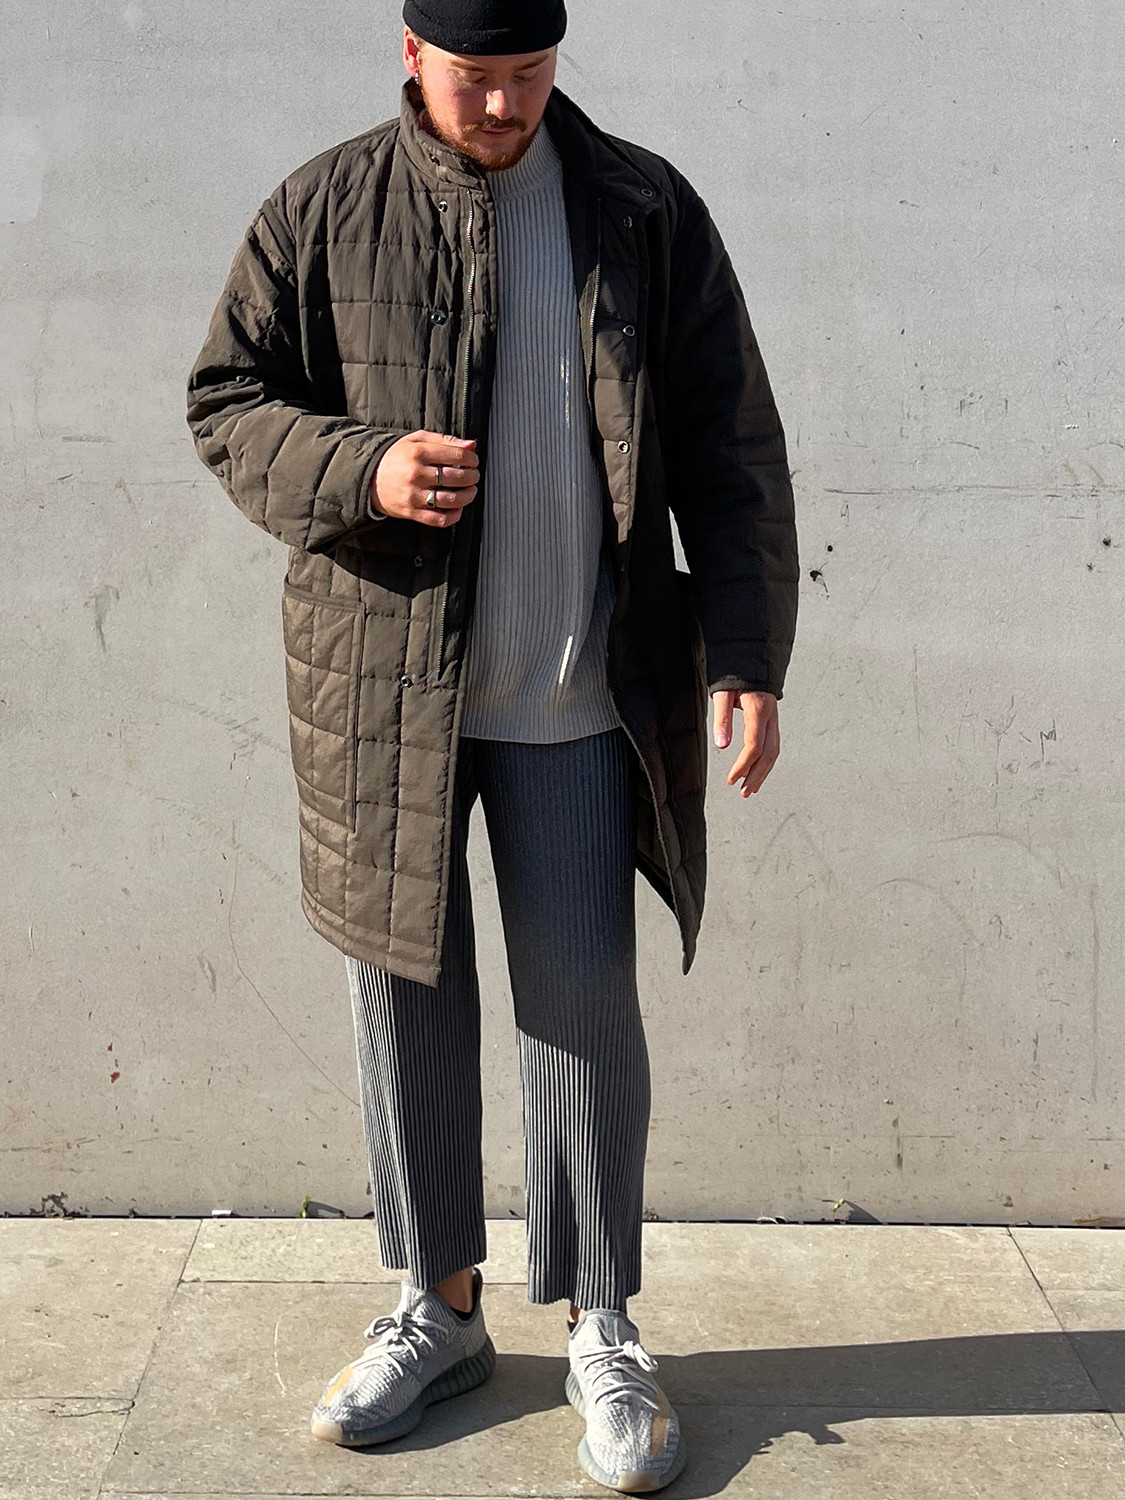 Men's outfit idea for 2021 with green down coat, grey plain crew neck knitted sweater, grey sweatpants, grey sneakers. Suitable for fall and winter.